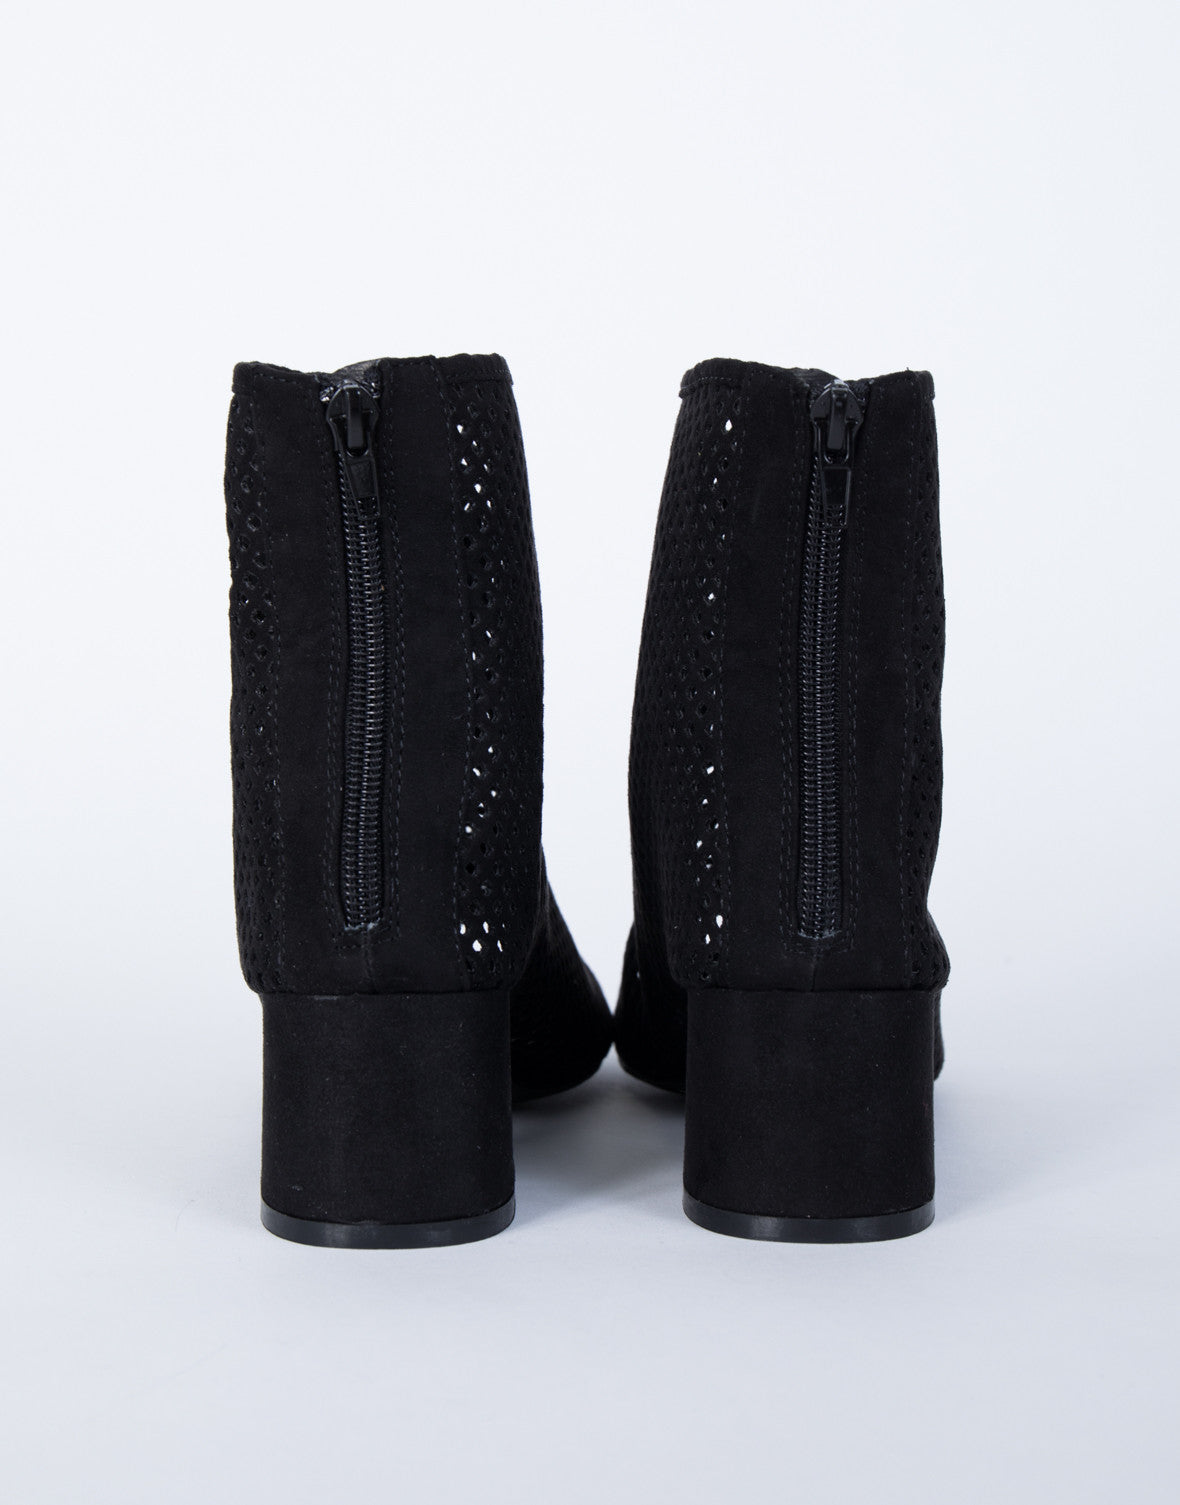 Perfectly Perforated Booties